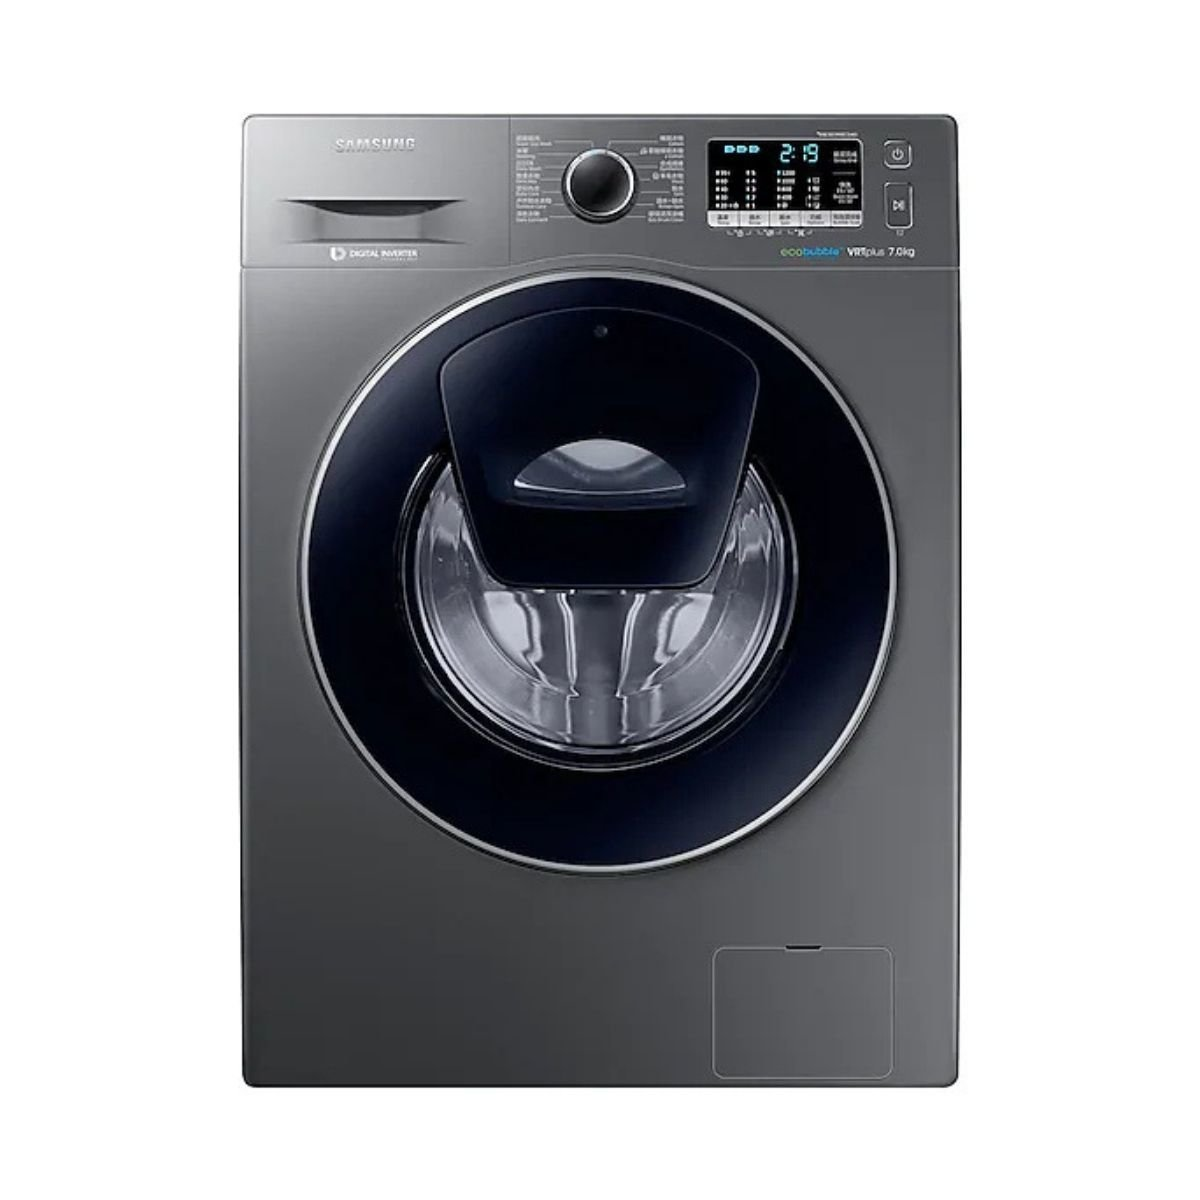 WW-80K5210VX Washing Machine